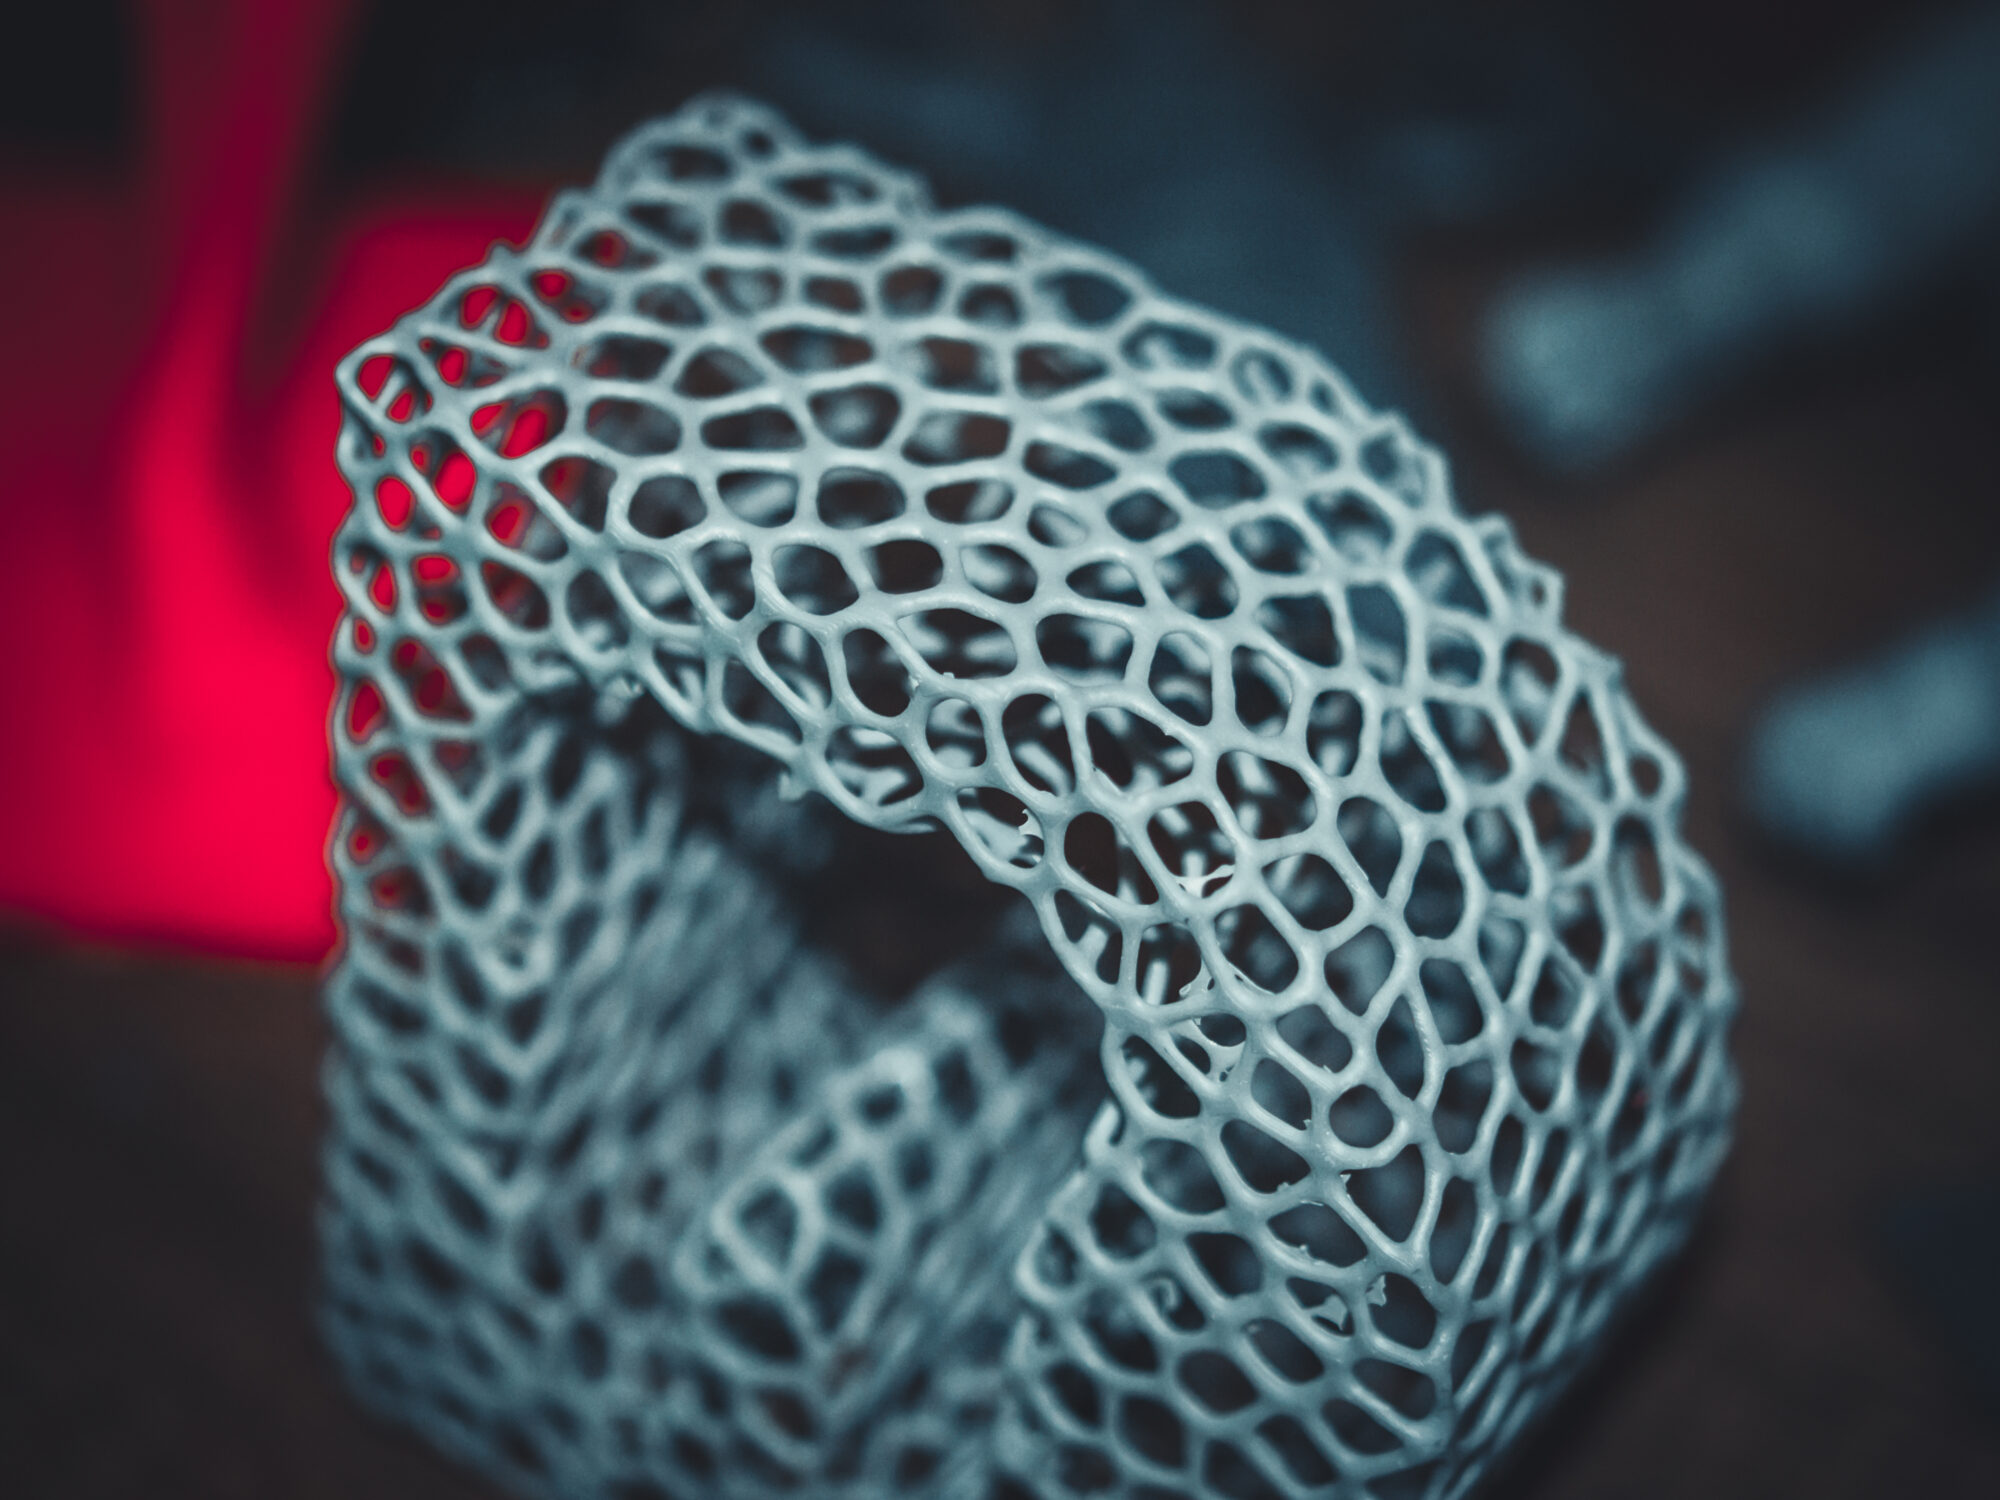 Resin printers give engineers new freedoms for designing parts.